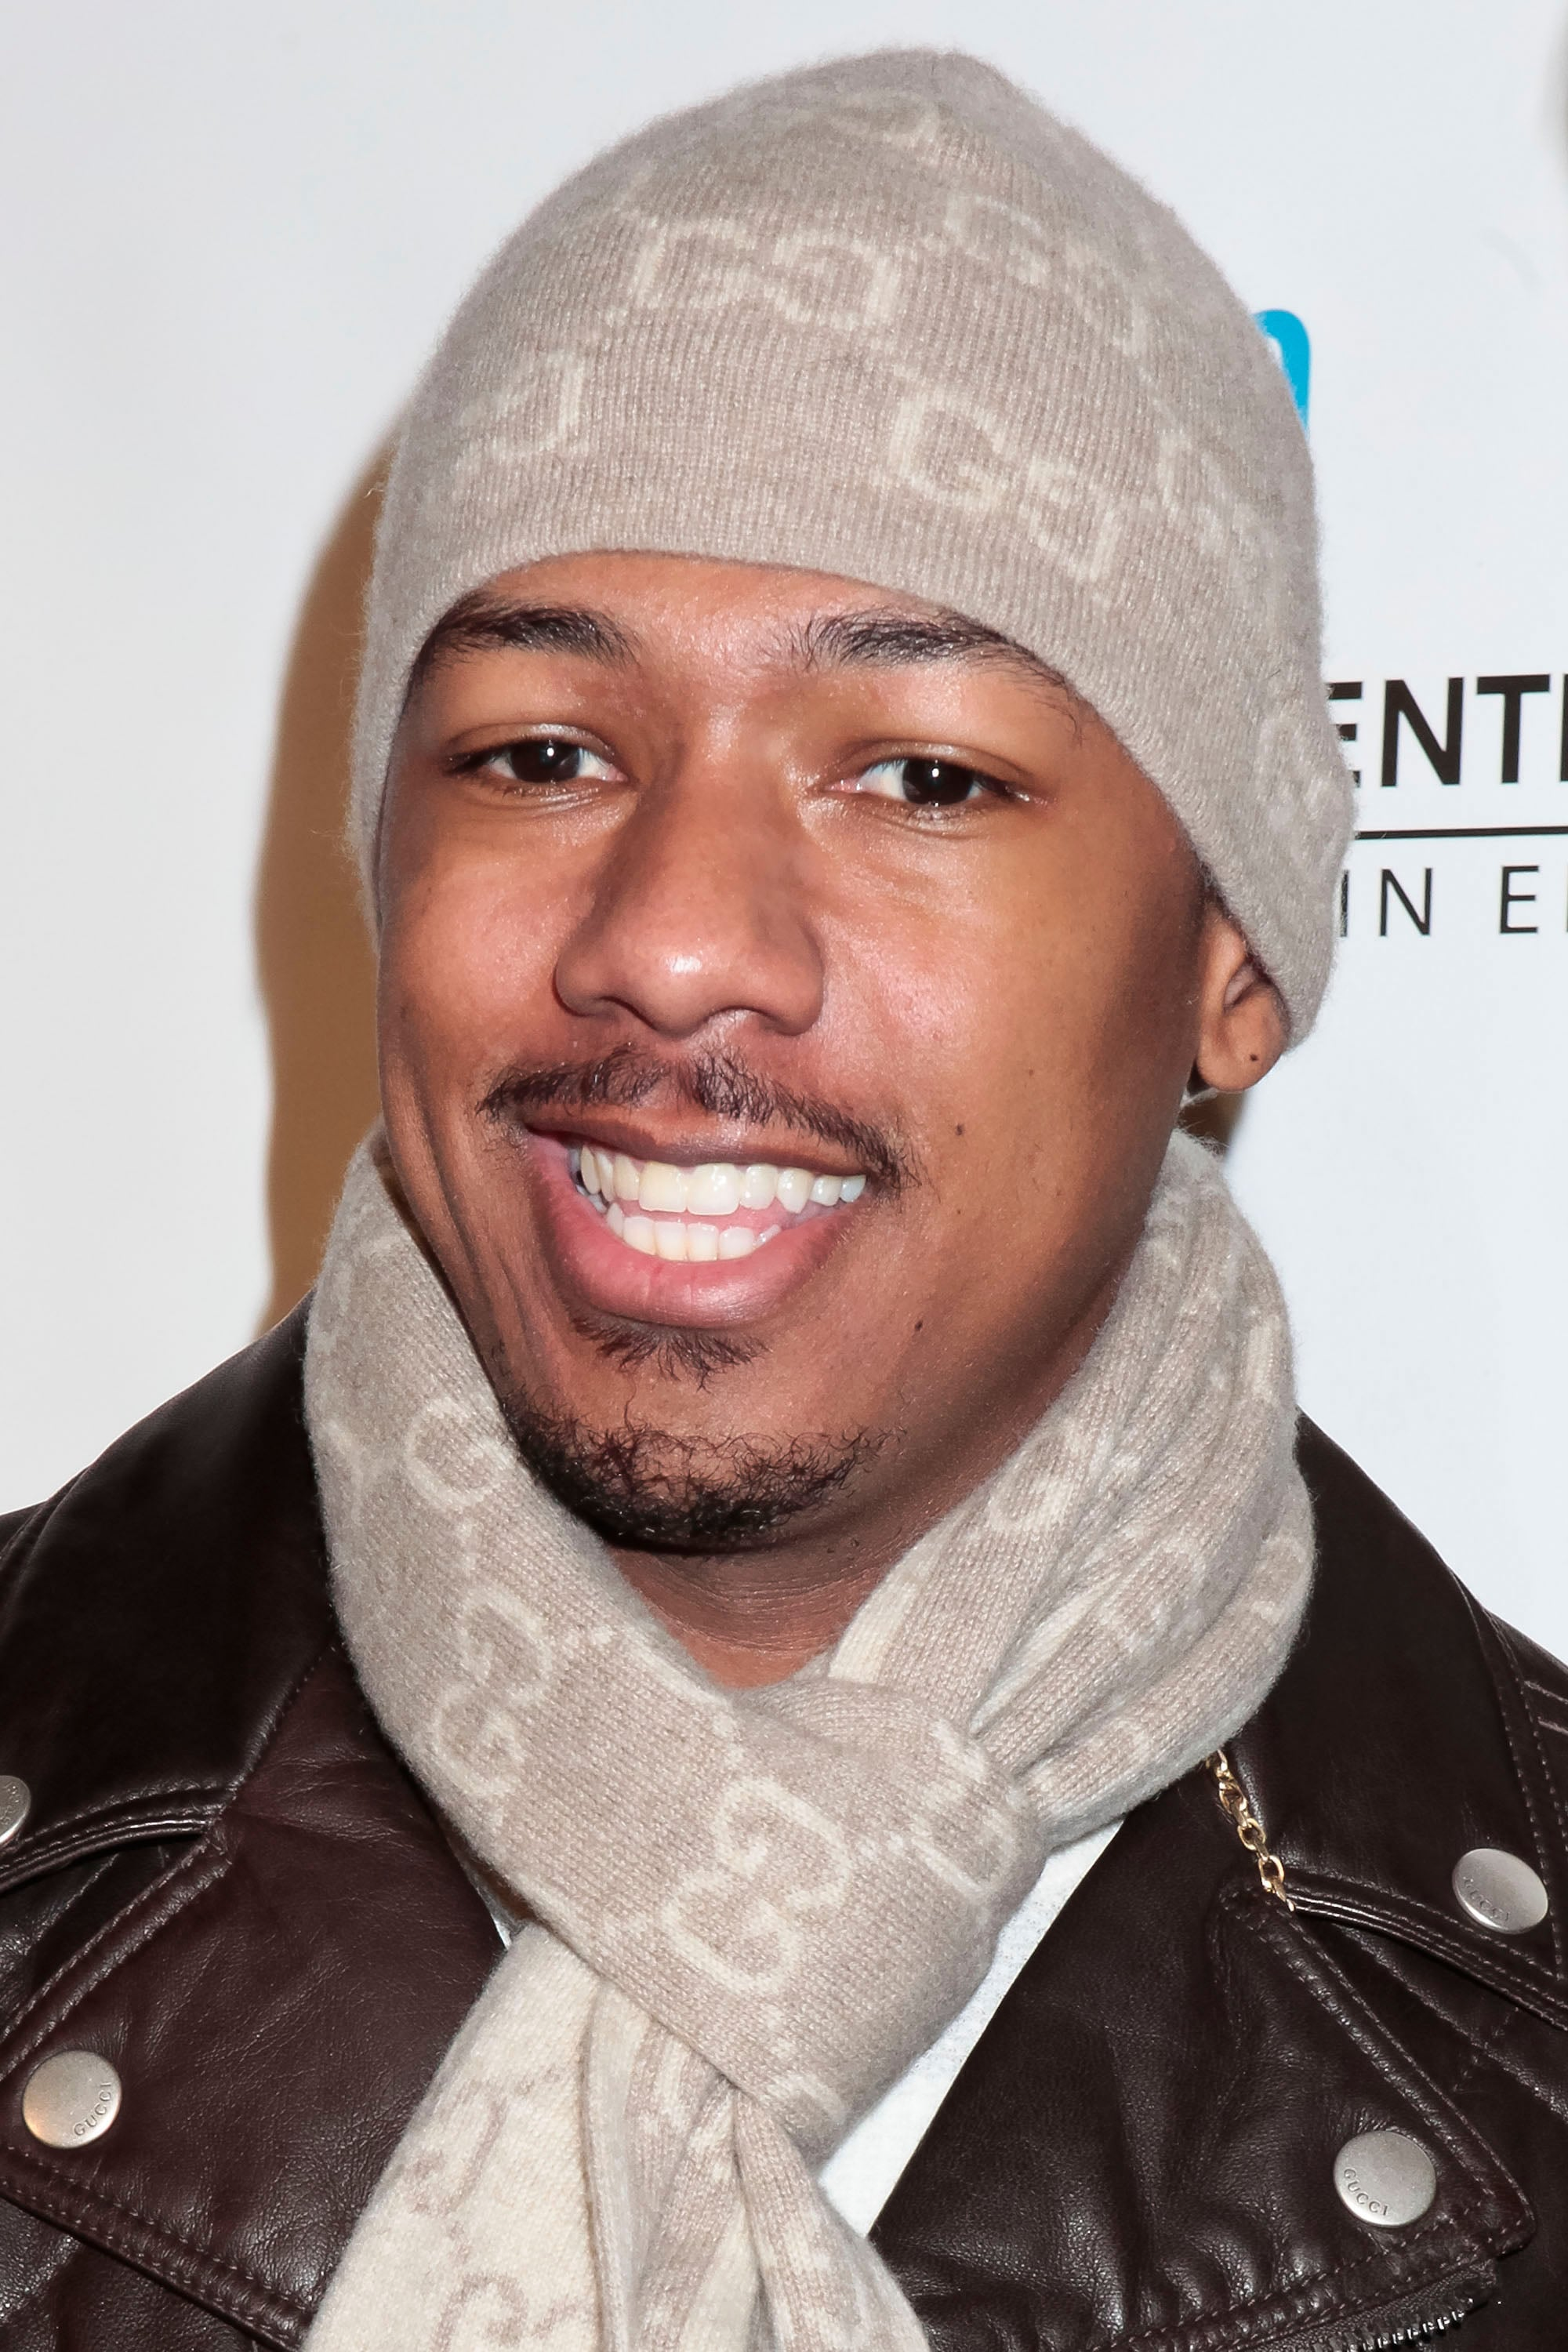 """In 2005, Nick Cannon told USA Today about the inspiration behind one of his songs: """"I didn't make the song ['Can I Live'] to make a political statement. I'm just thanking my mom for being strong."""""""